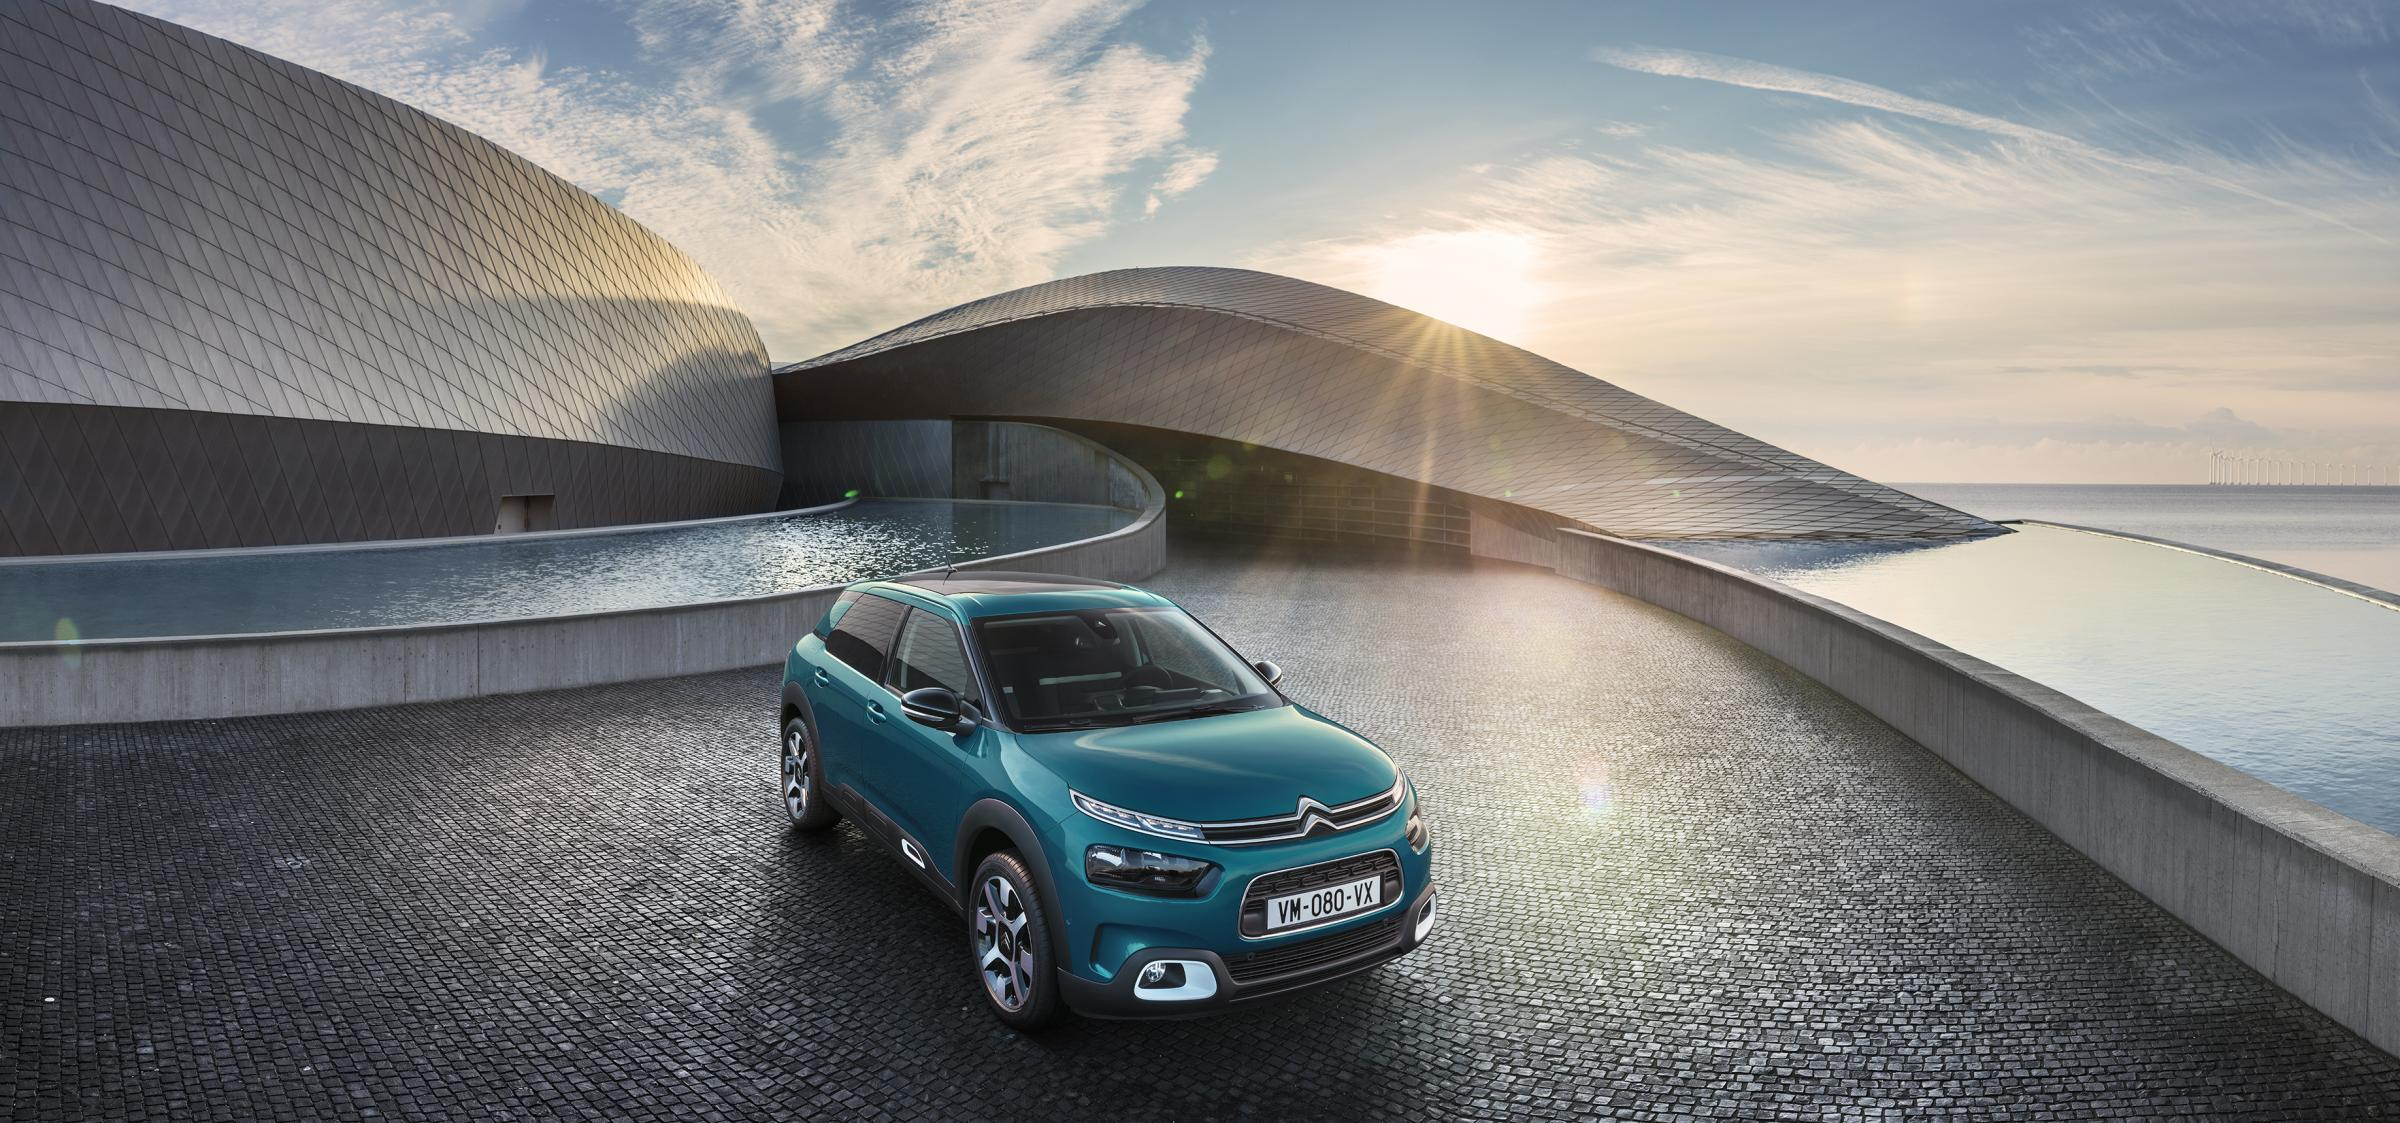 The new Citroen Cactus